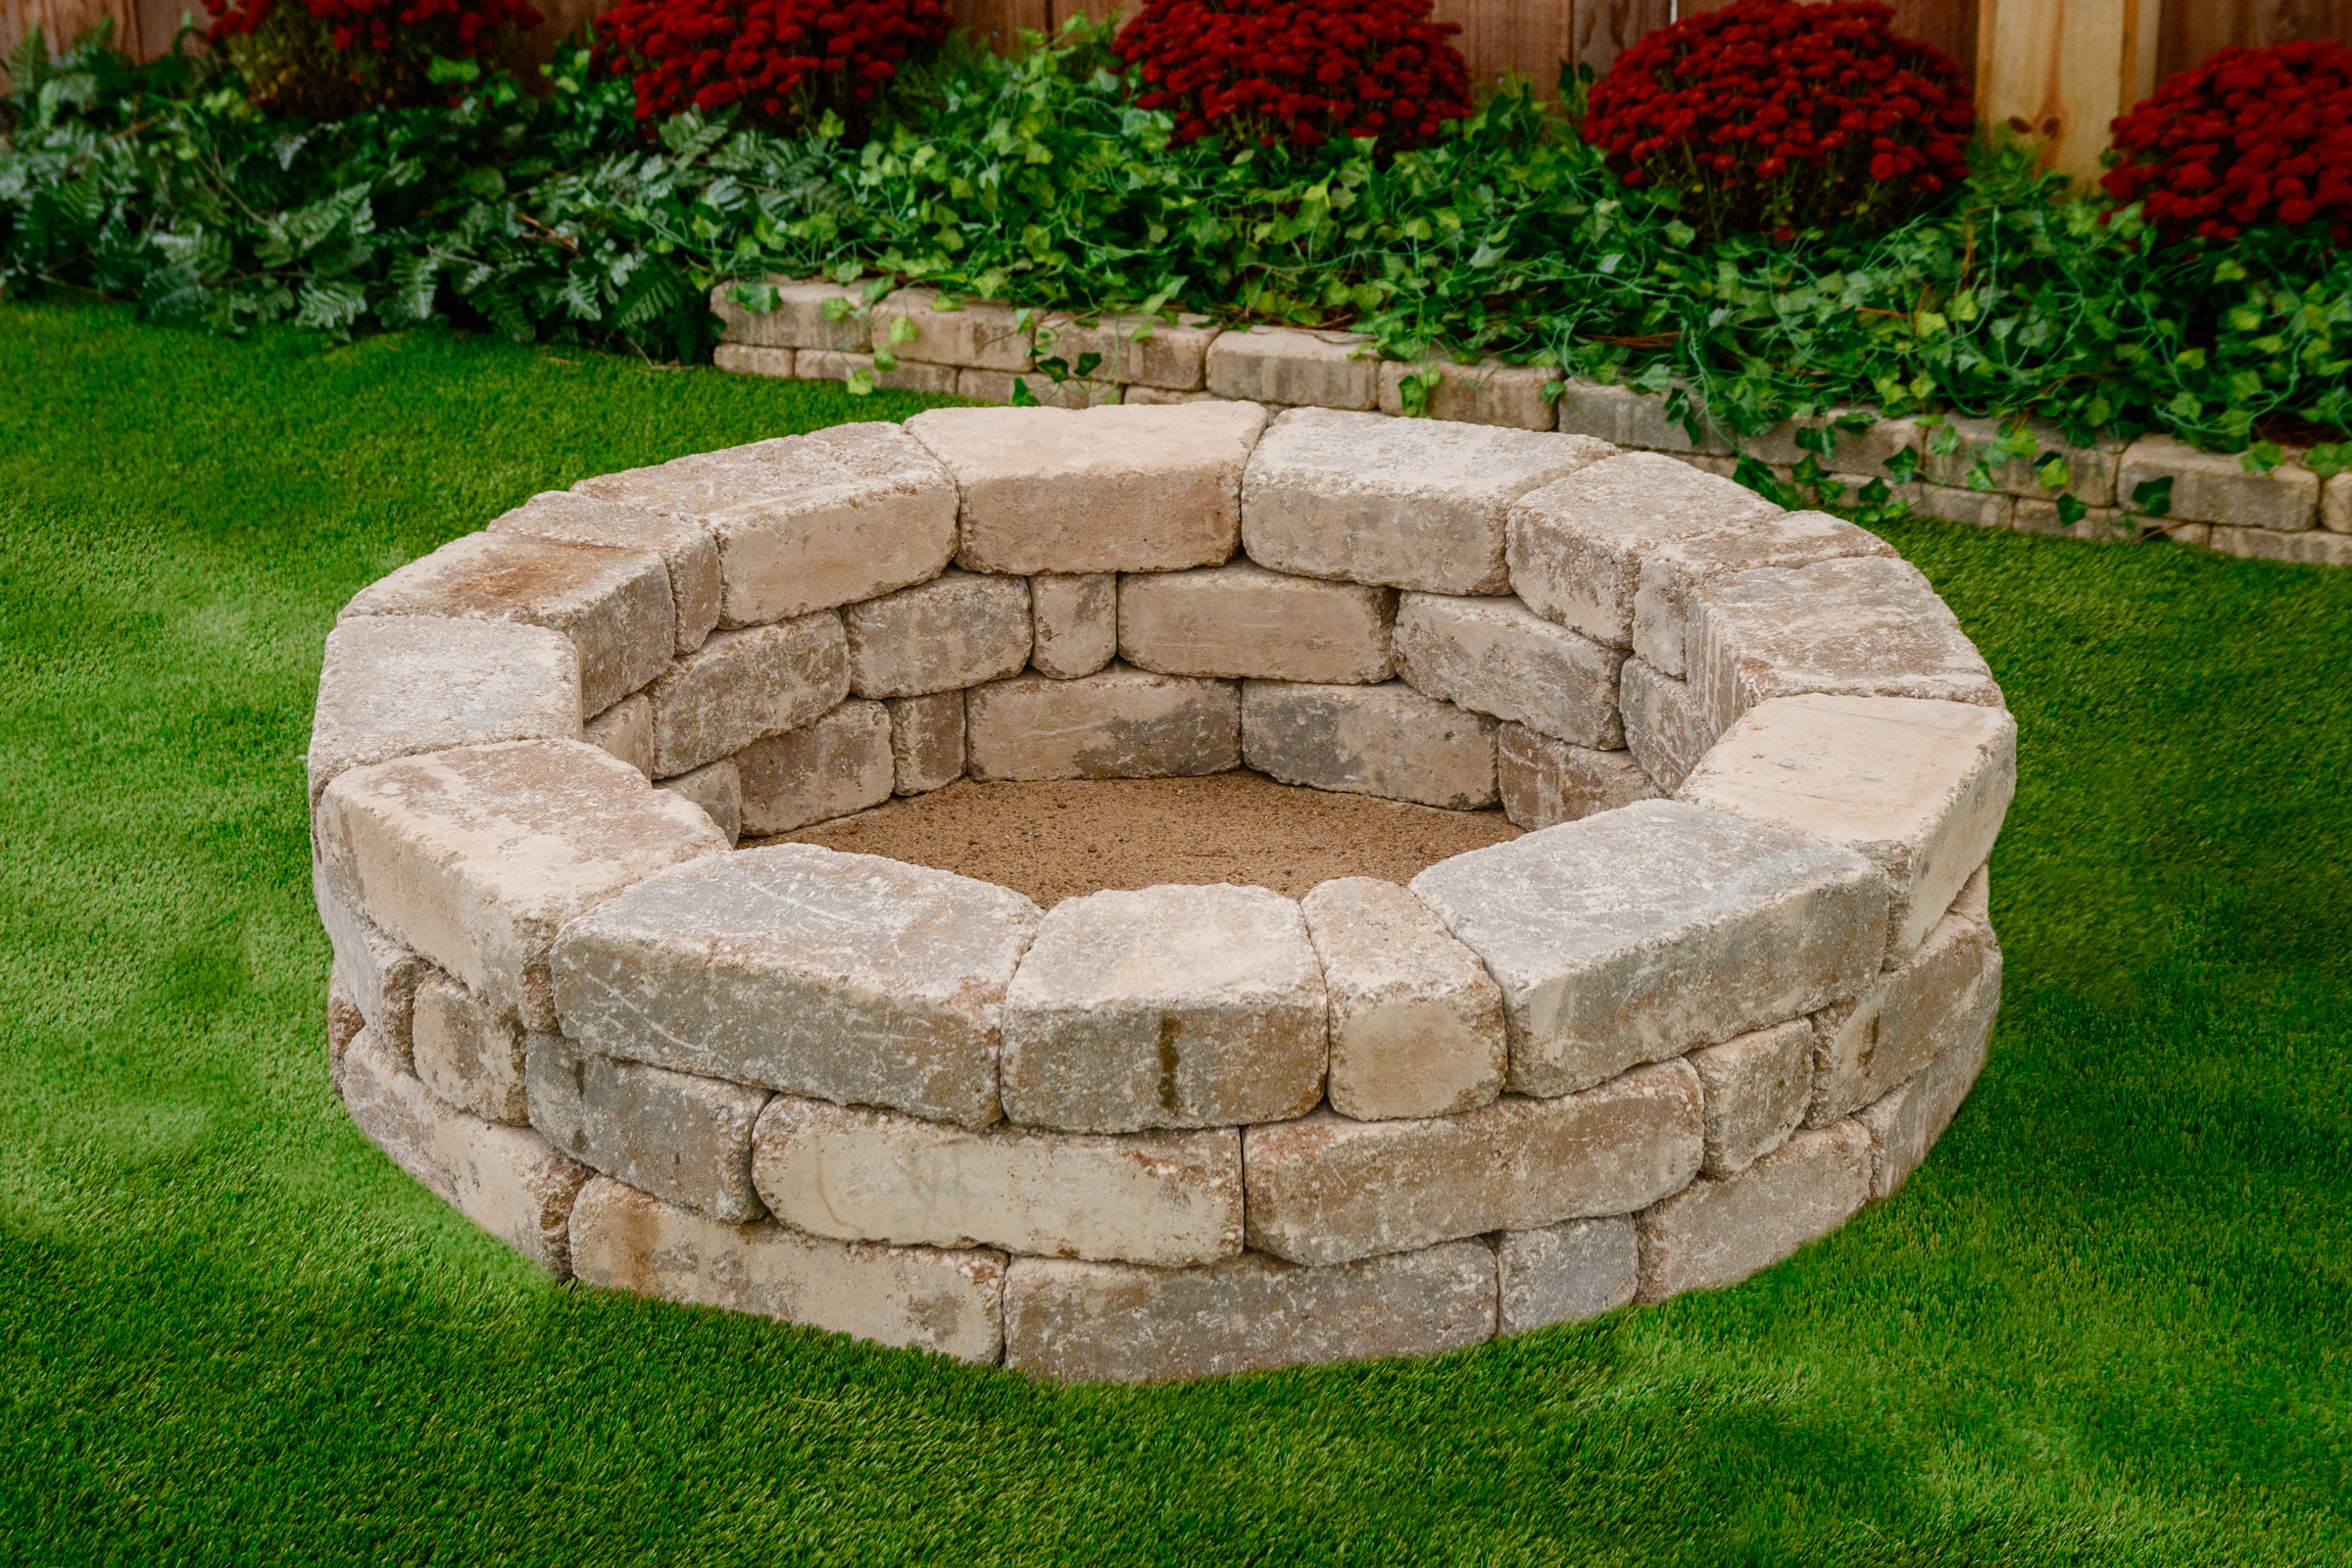 Free fire pit included - color will match grill station